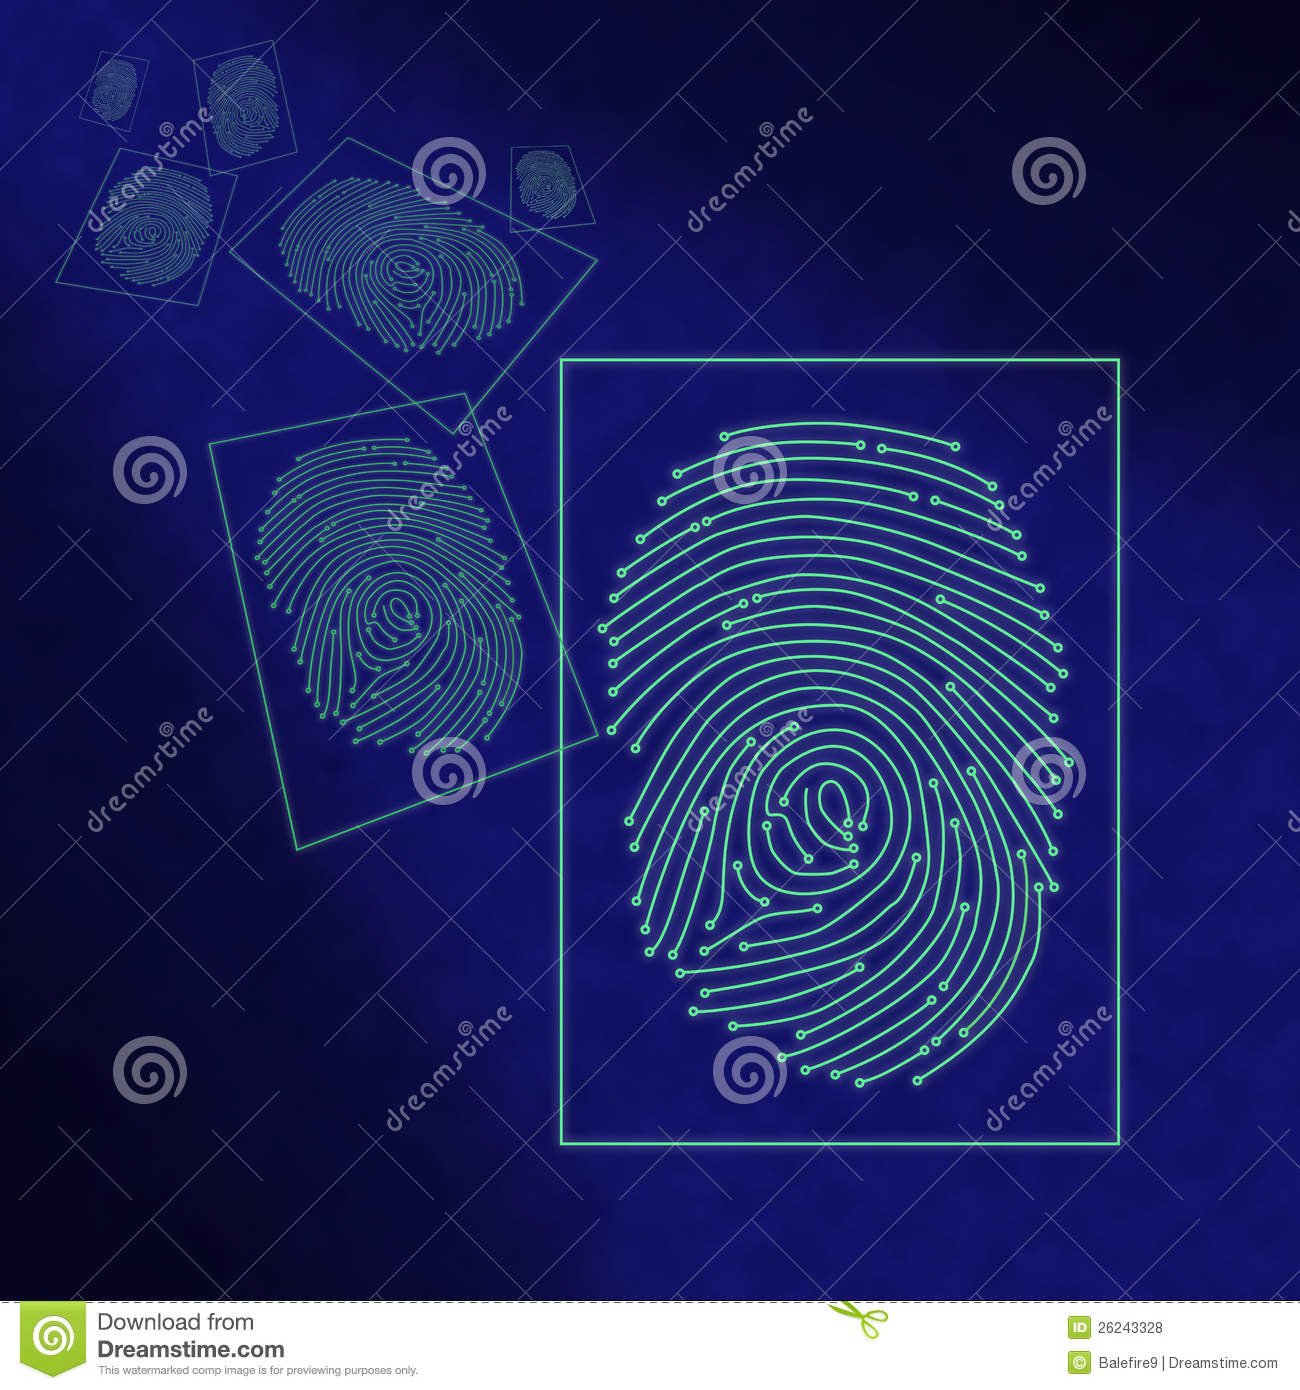 Series of electronic digital fingerprints